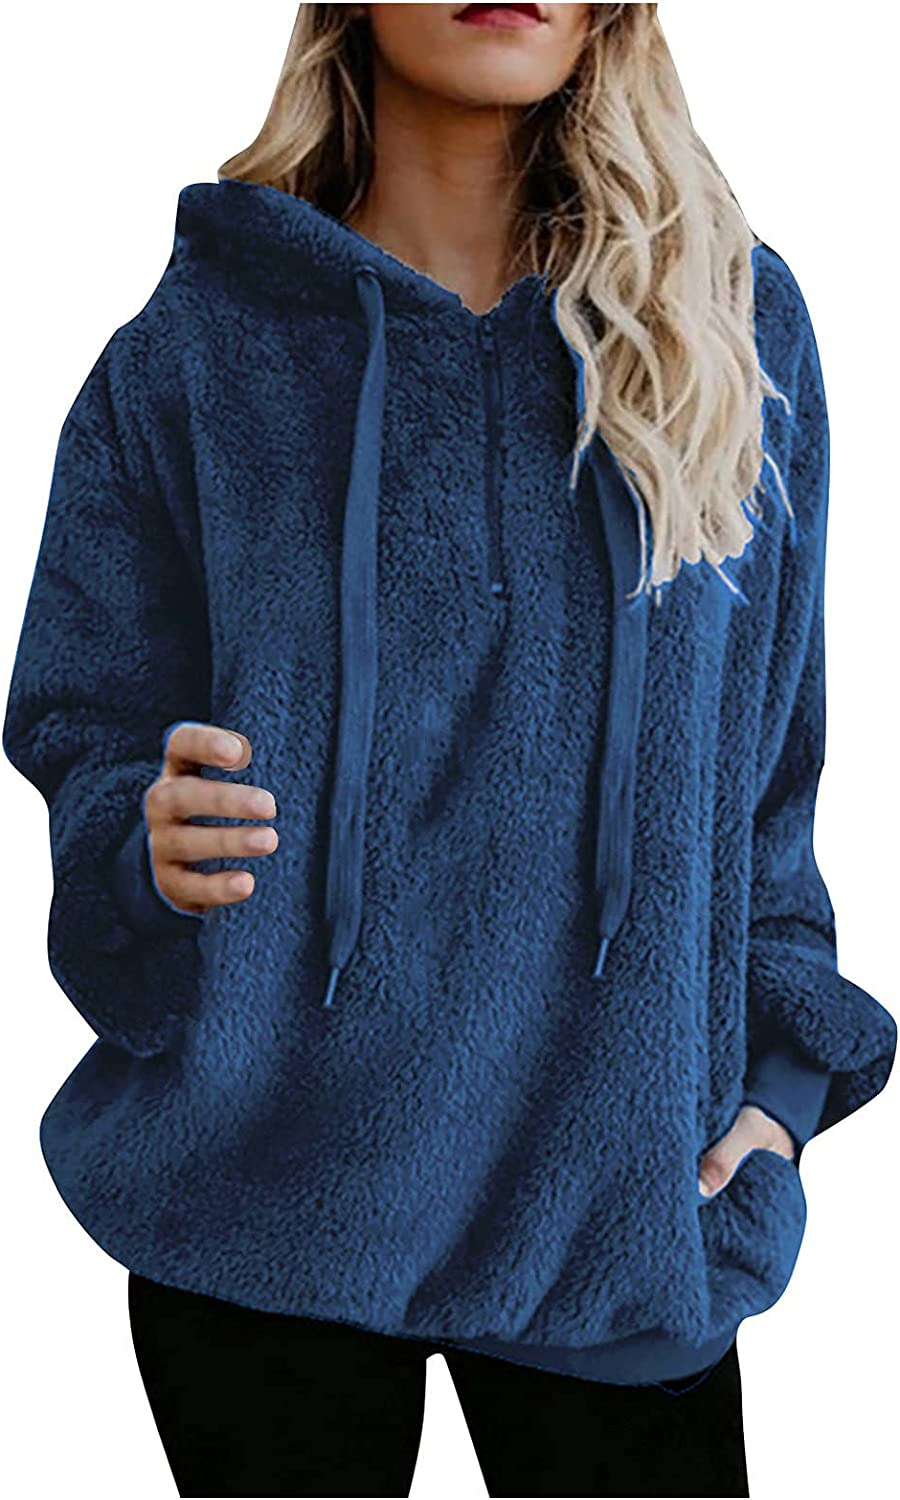 Womens Long Sleeve Deluxe Solid Fuzzy Cardigan San Diego Mall Front Fleece Hooded Open